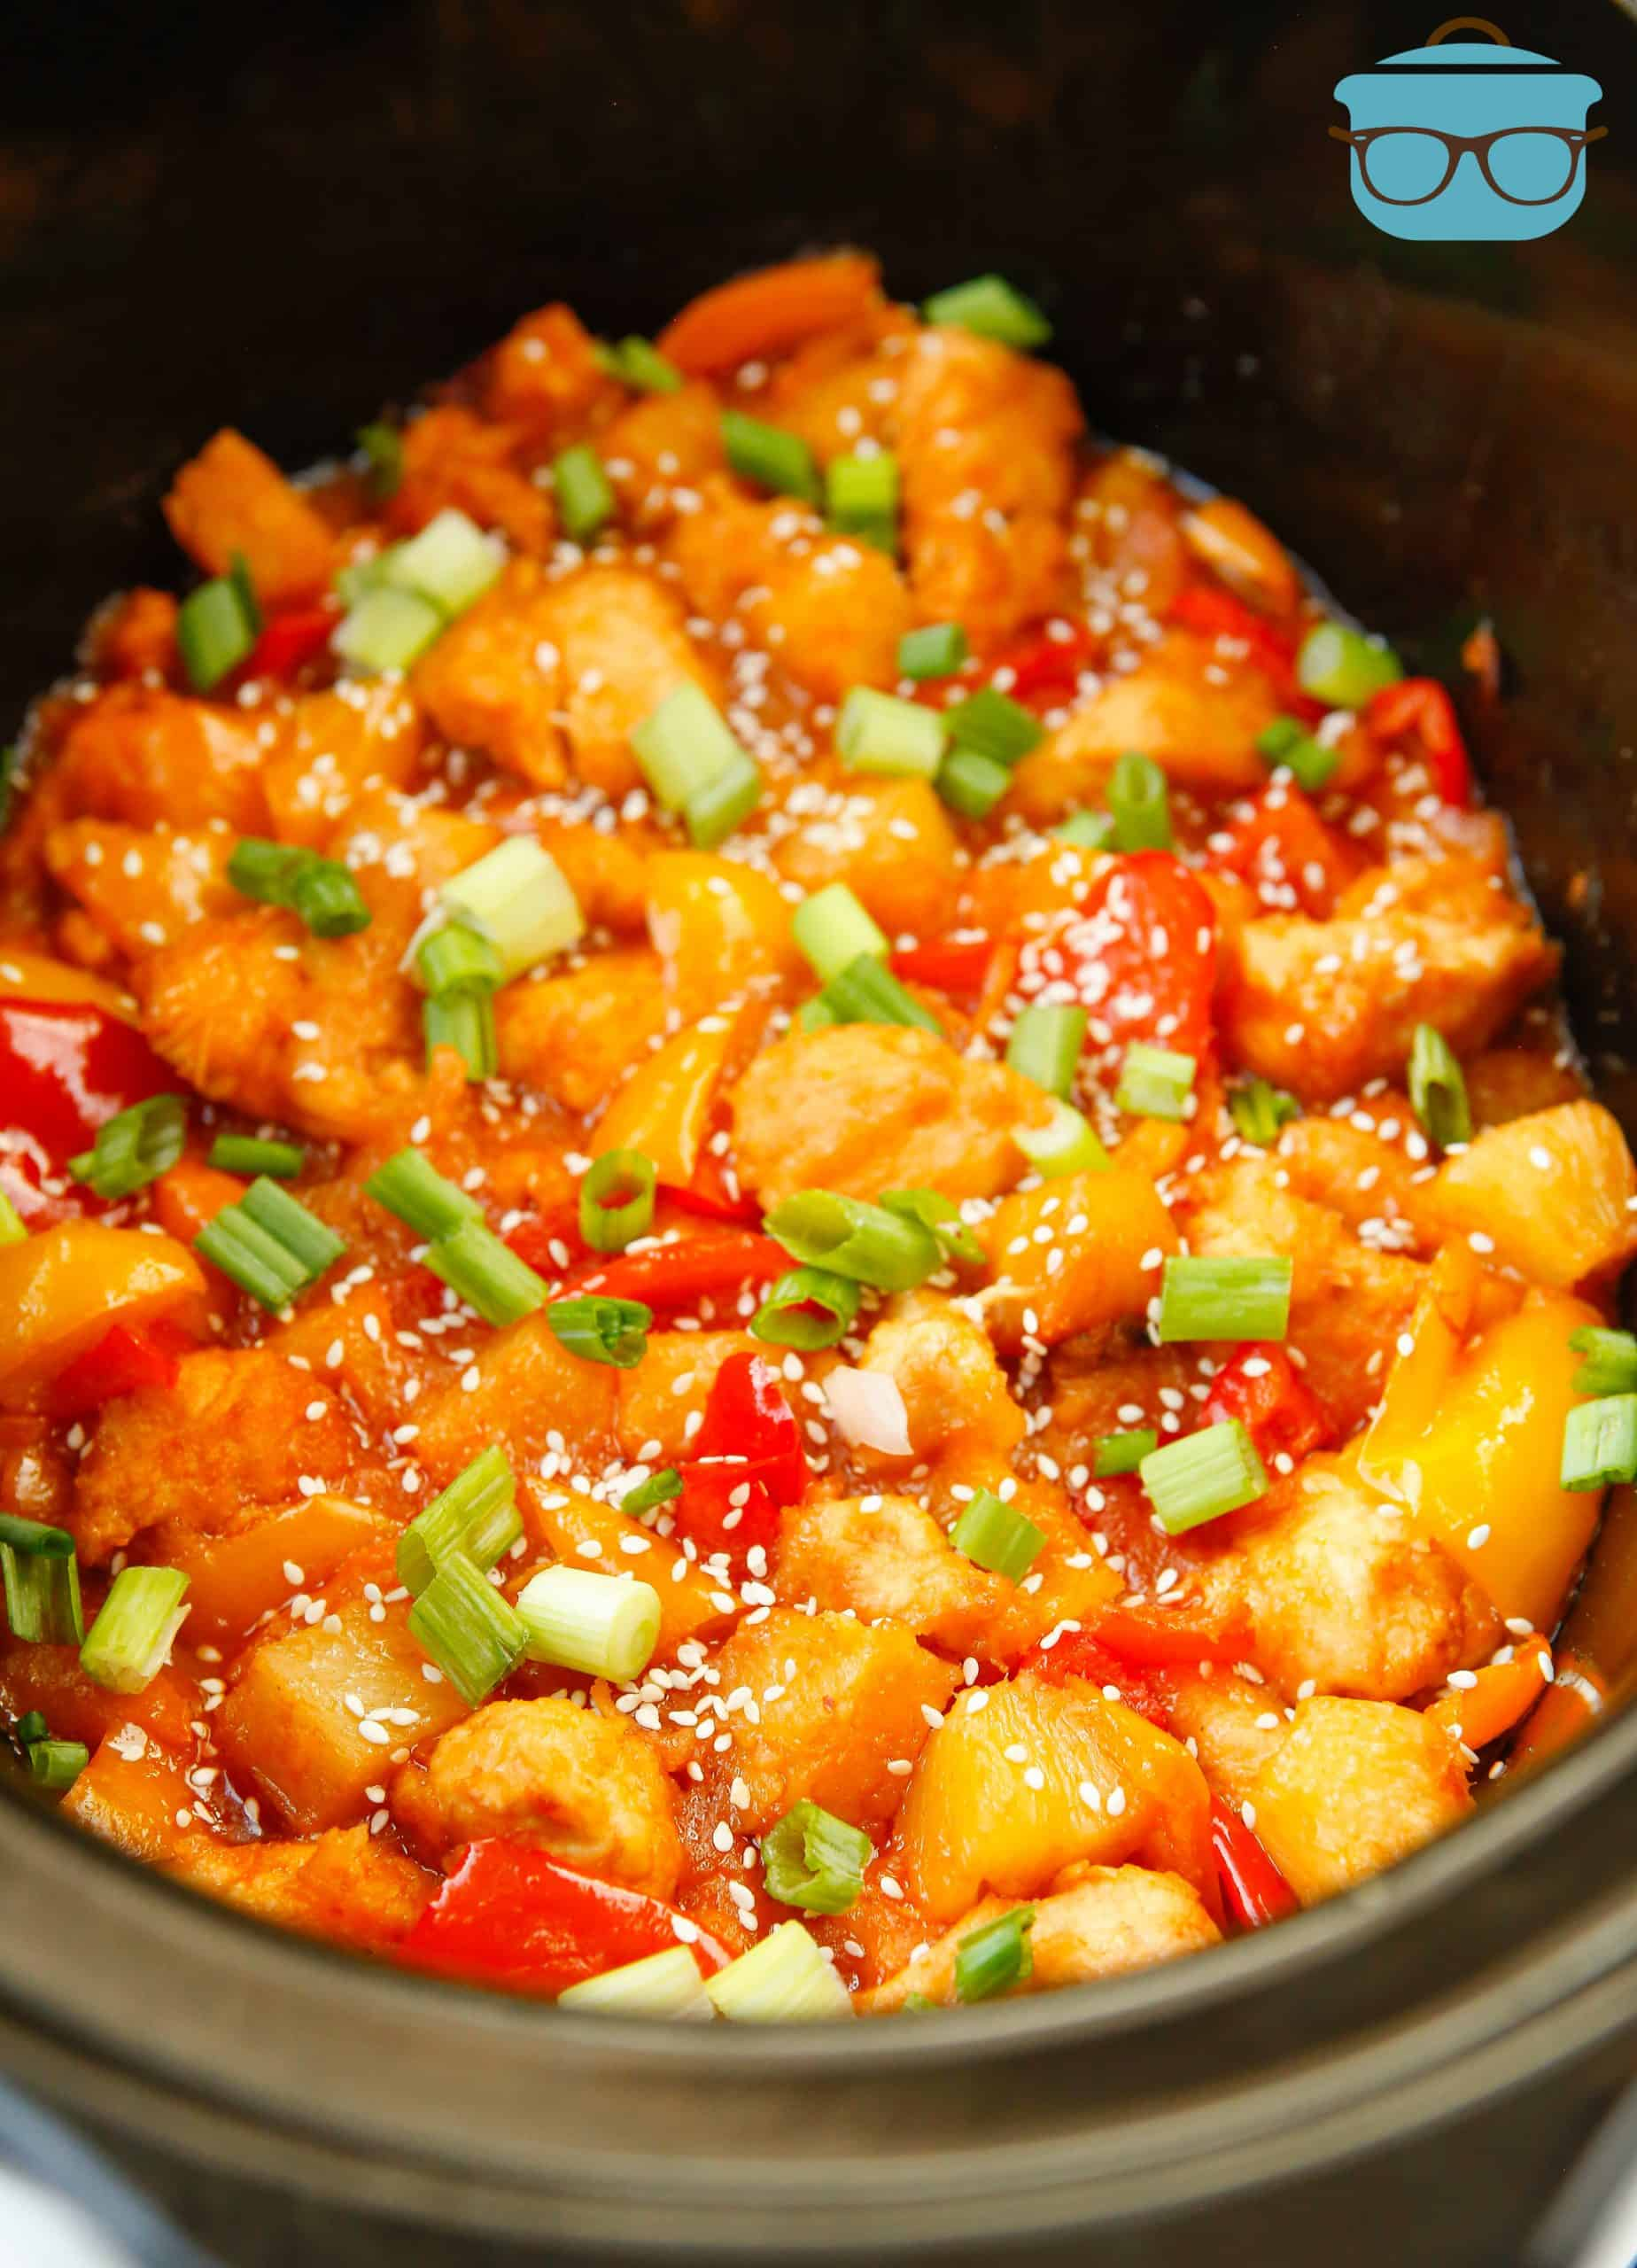 Sweet & Sour Chicken, fully cooked, down in a black oval slow cooker.